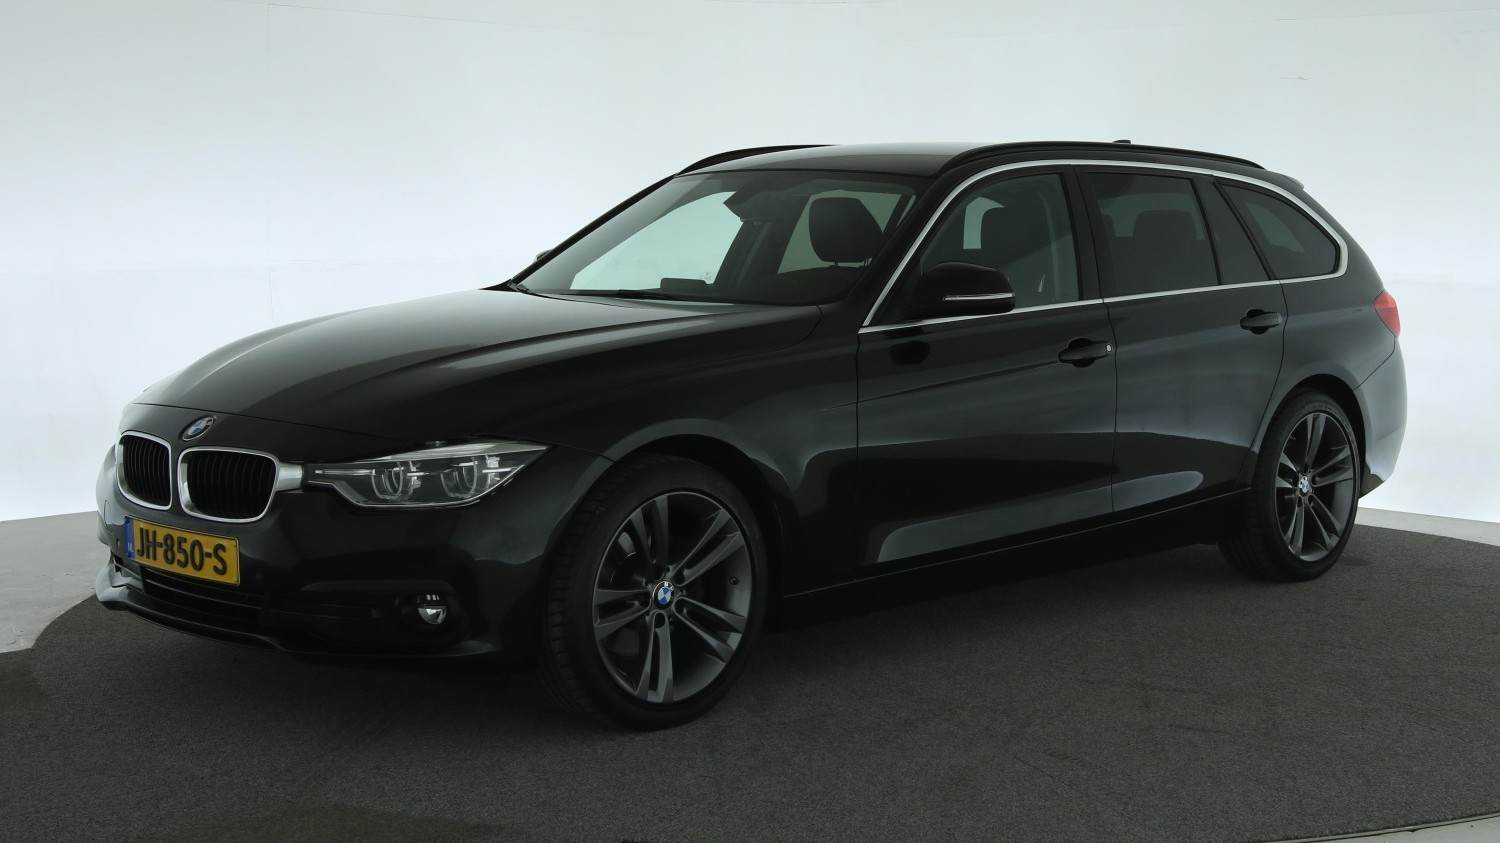 BMW 3-serie Station 2016 JH-850-S 1